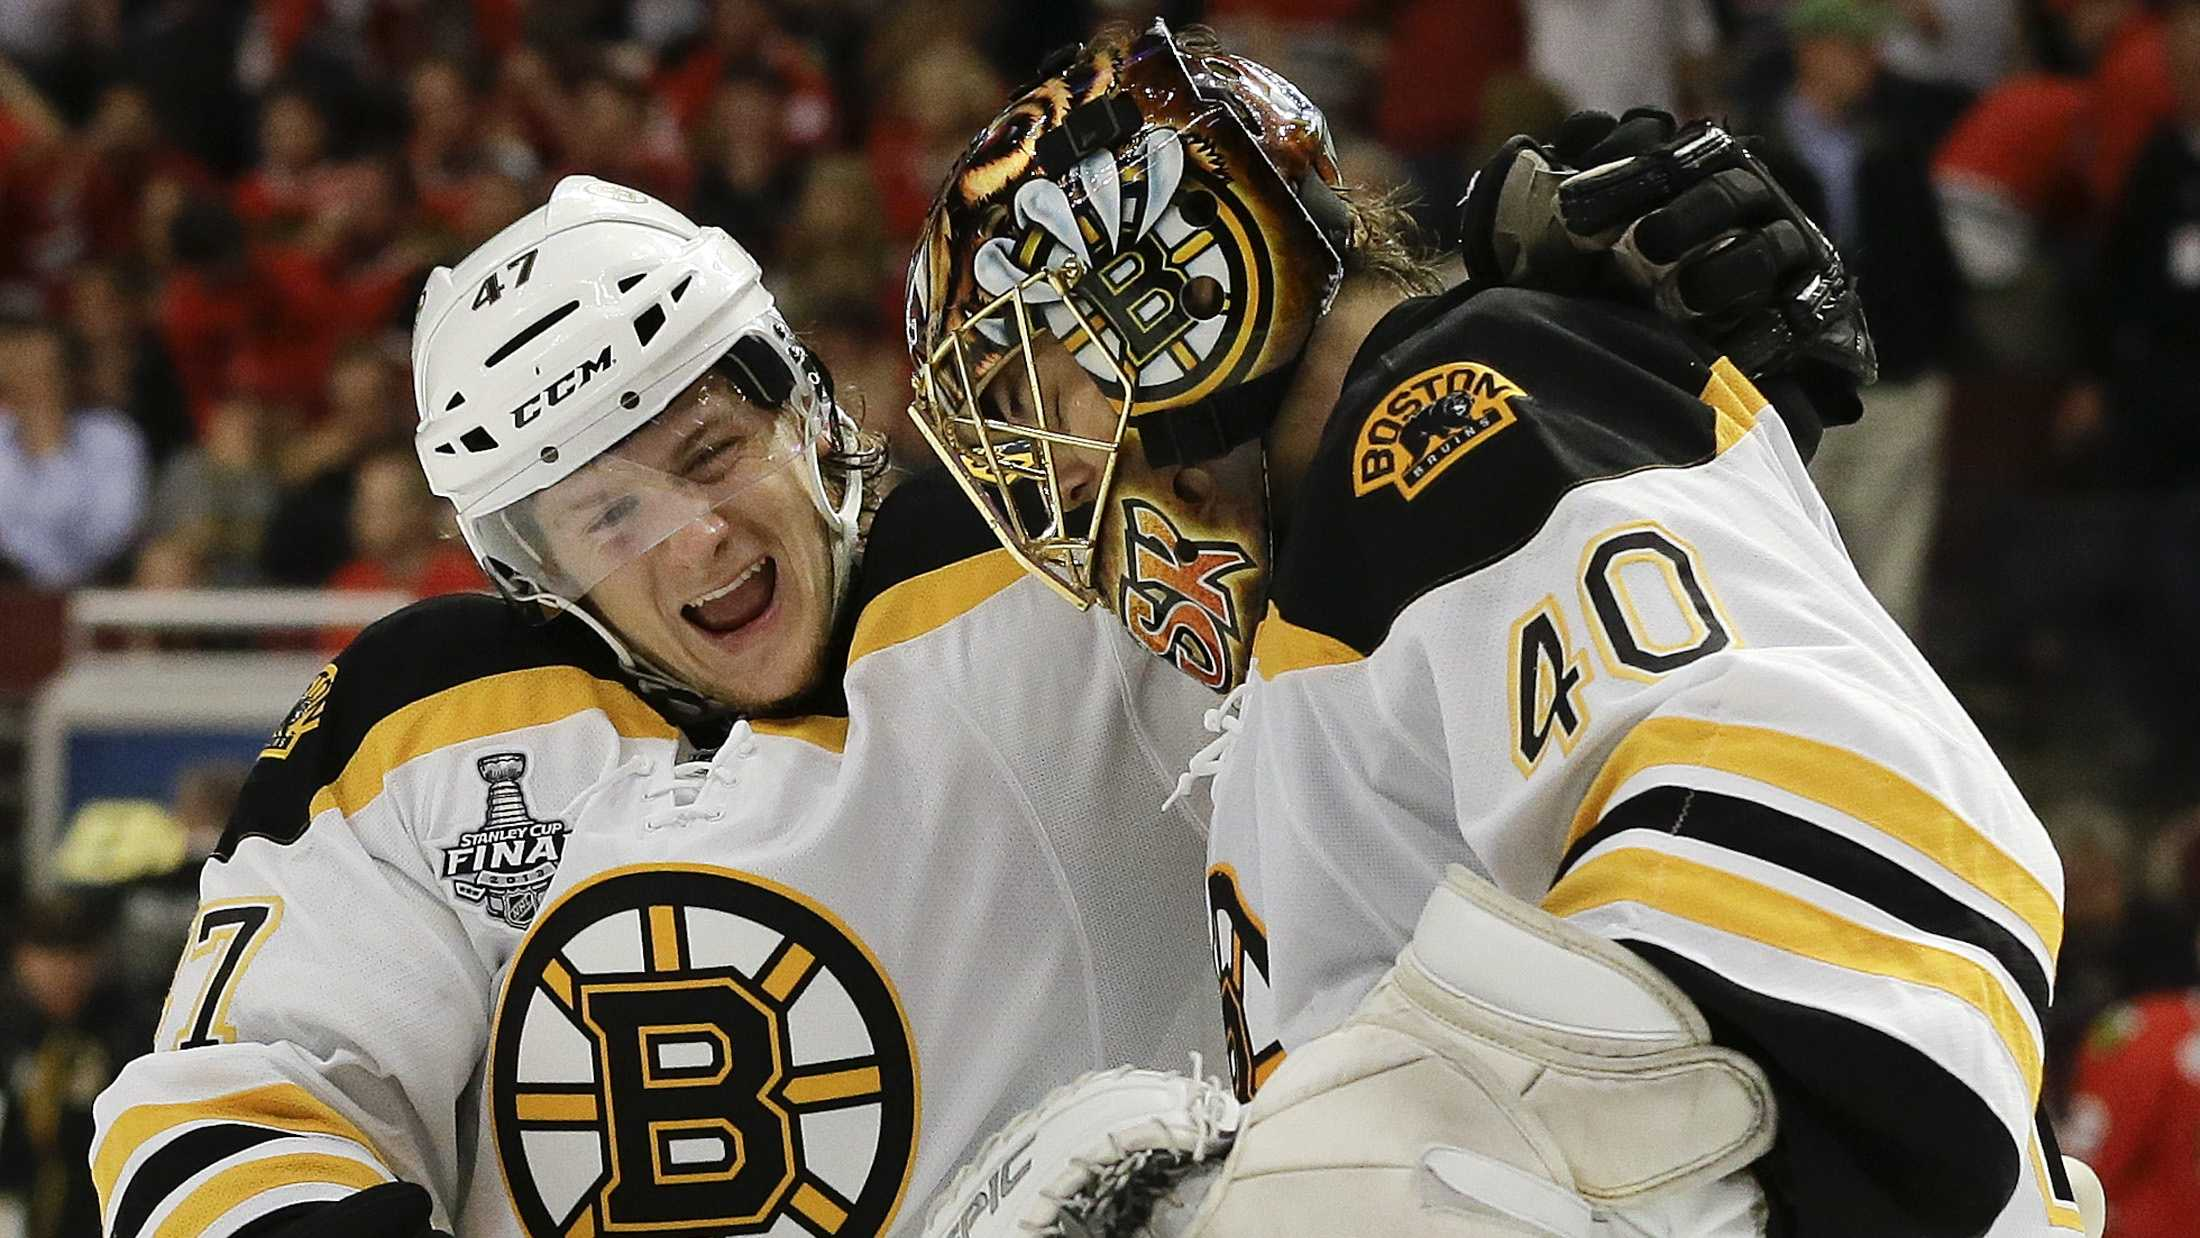 Krug Rask Bruins win over Blackhawks 061613